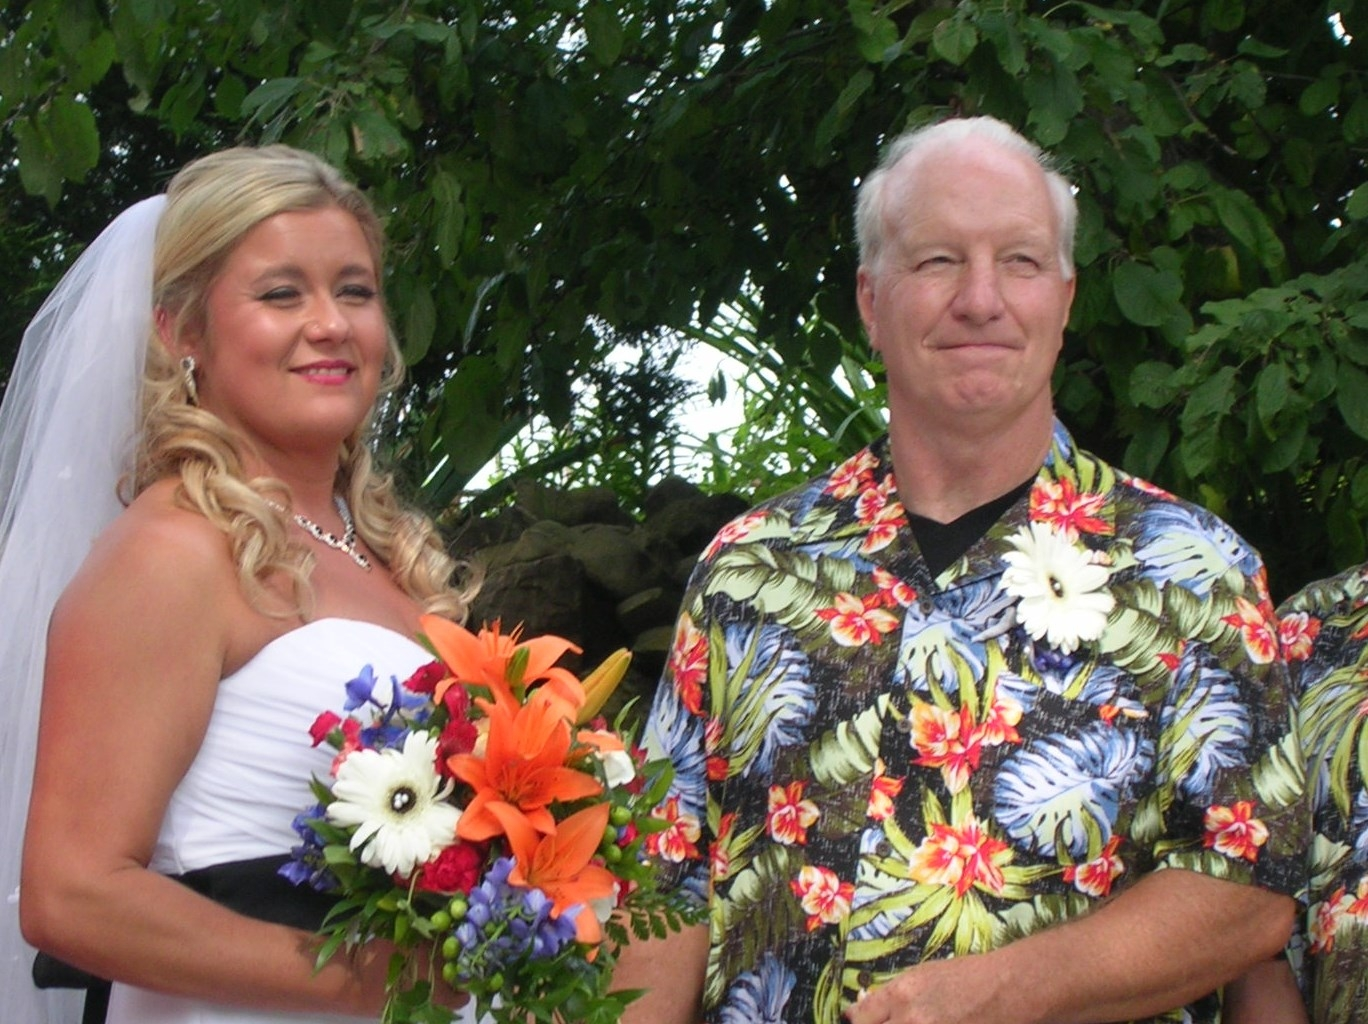 Suzanne Dunn and George Stevens are wed in Bennington